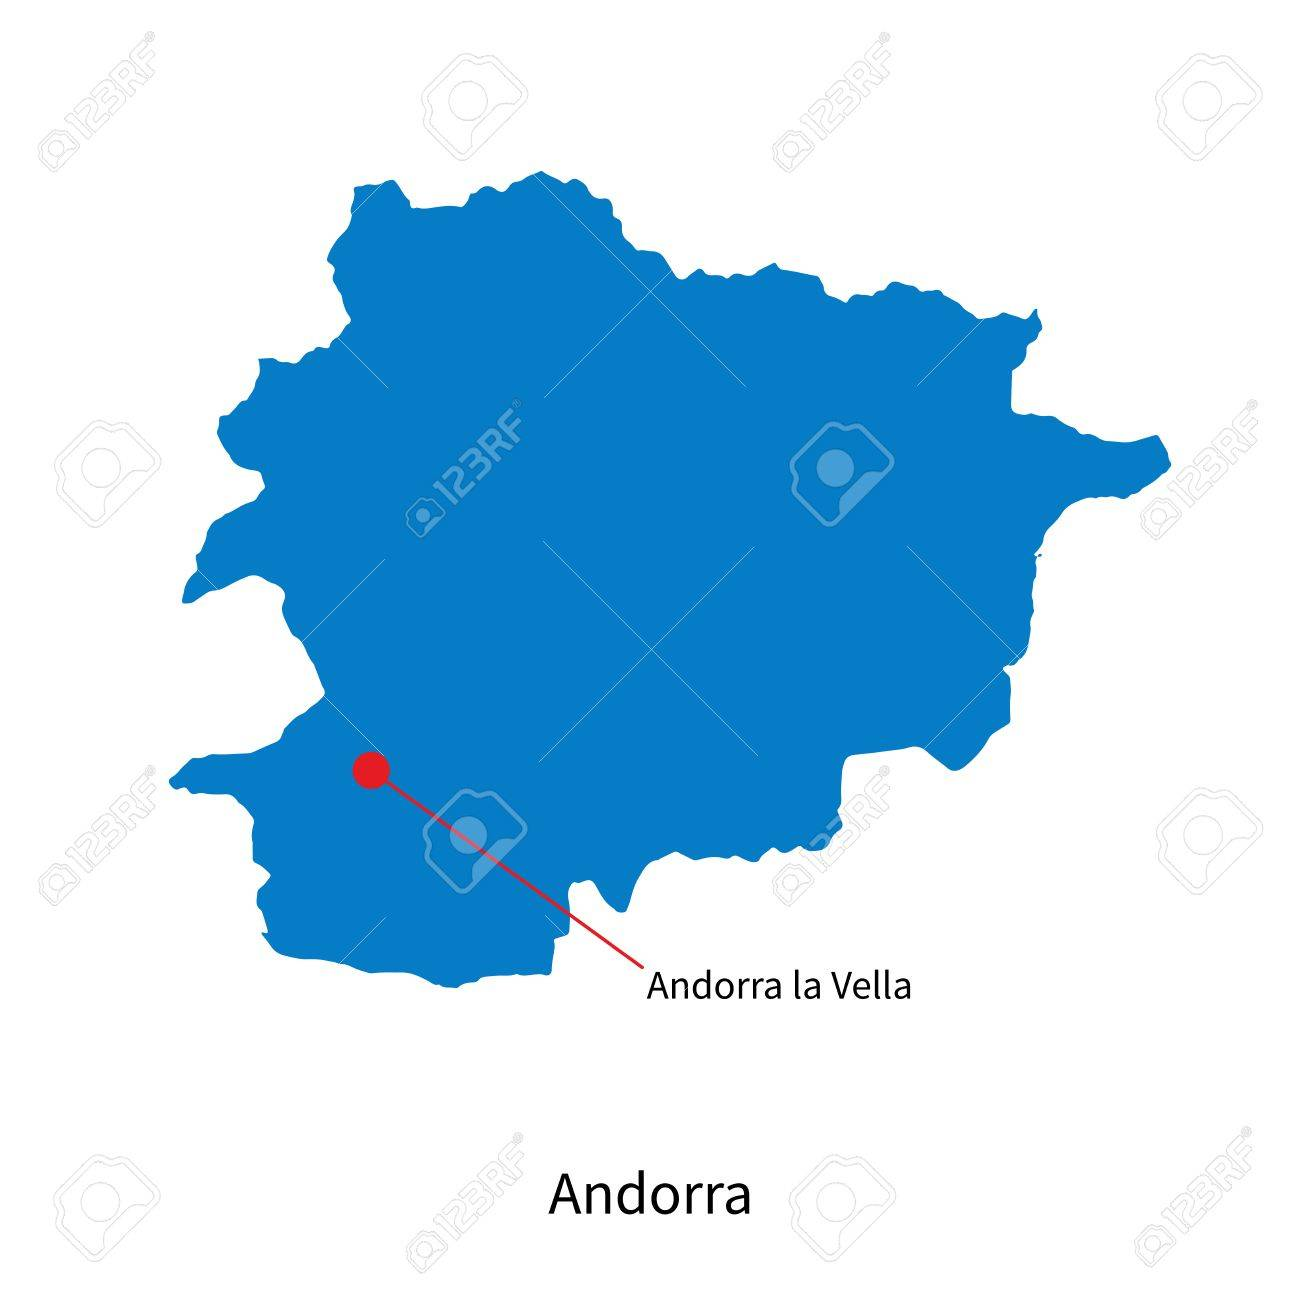 Detailed Vector Map Of Andorra And Capital City Andorra La Vella